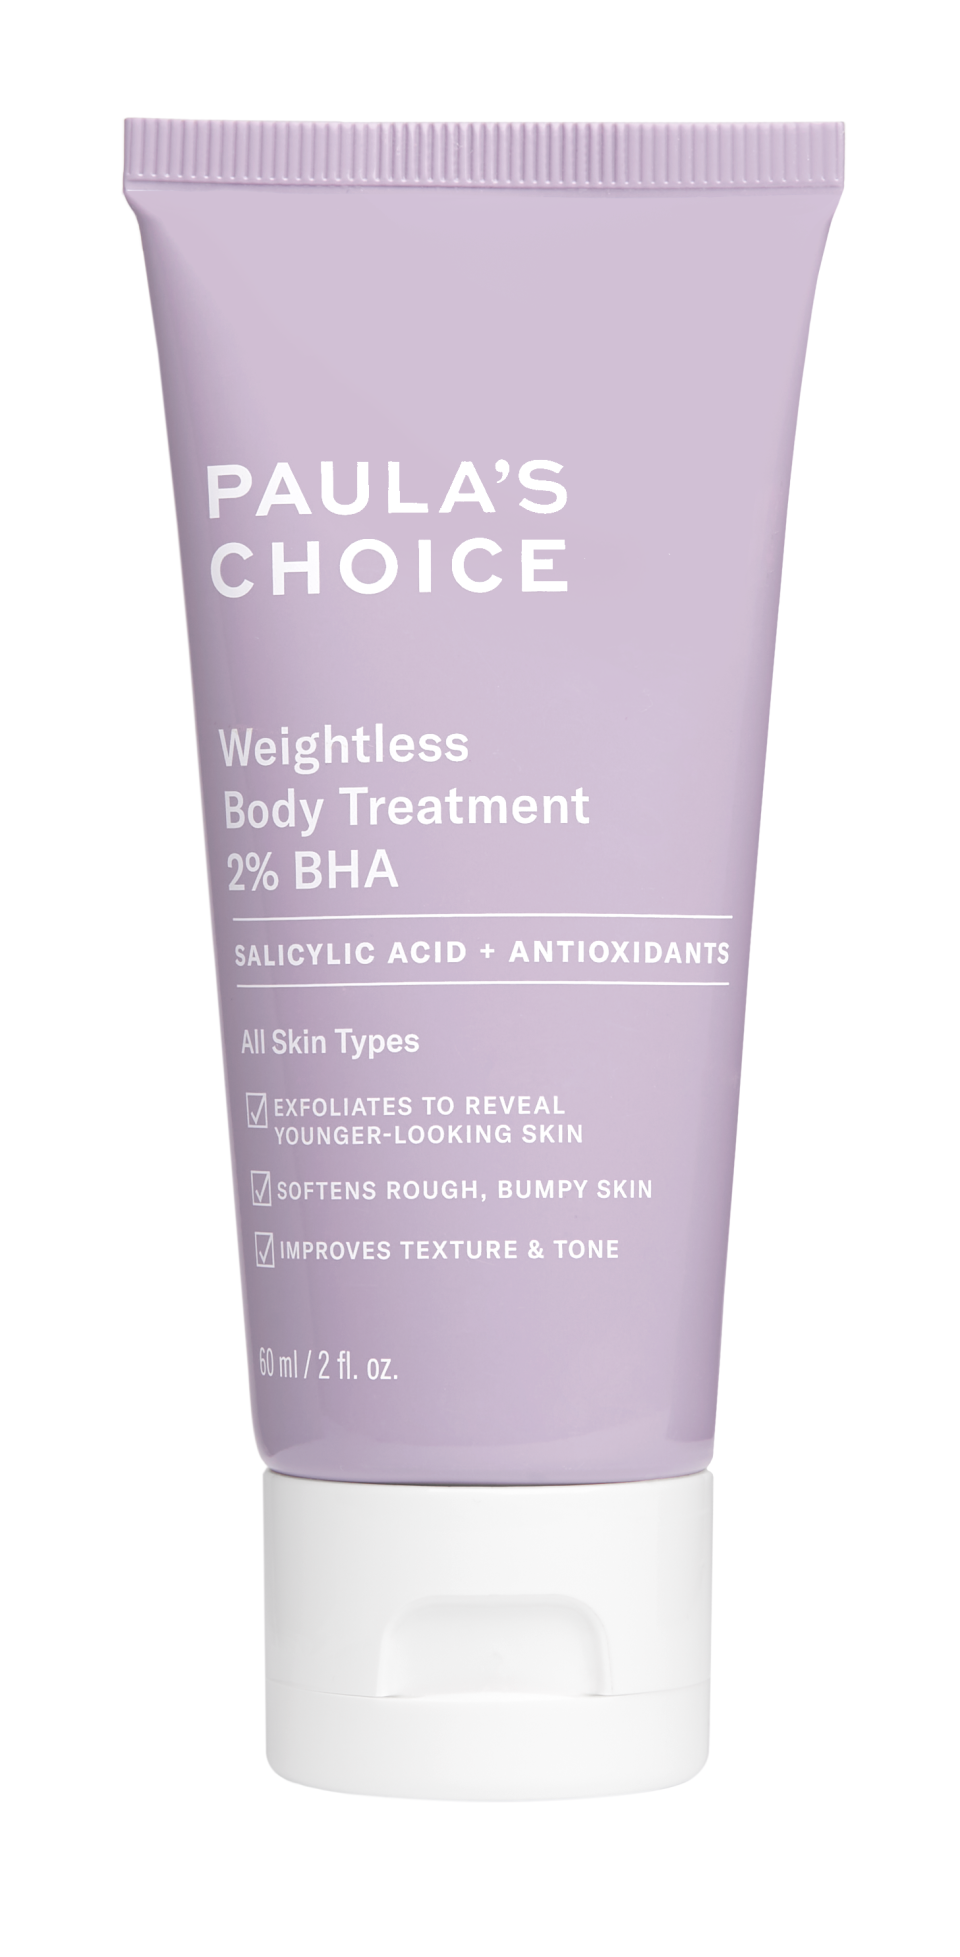 Paula's Choice Weightless Body Treatment - Credit: Courtesy of the Brand